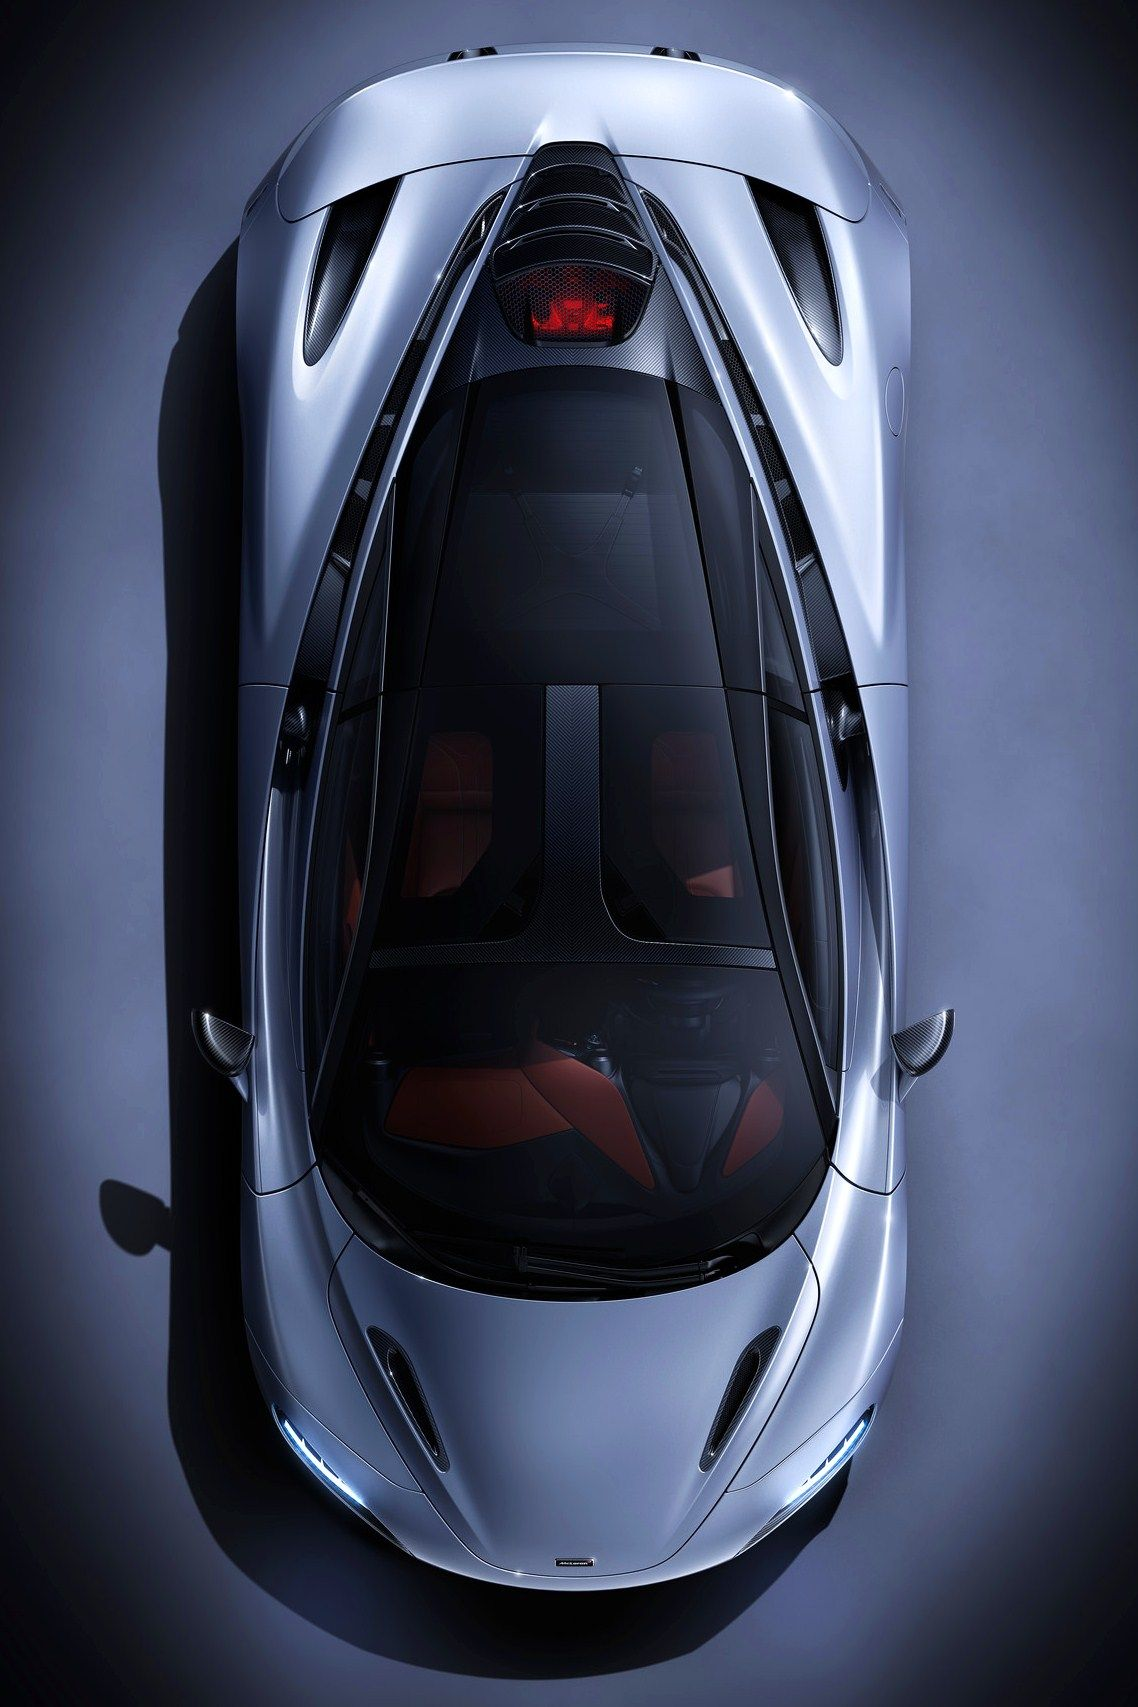 Top View Of A Mclaren 720s Cars Pinterest Cars Car Wheels And